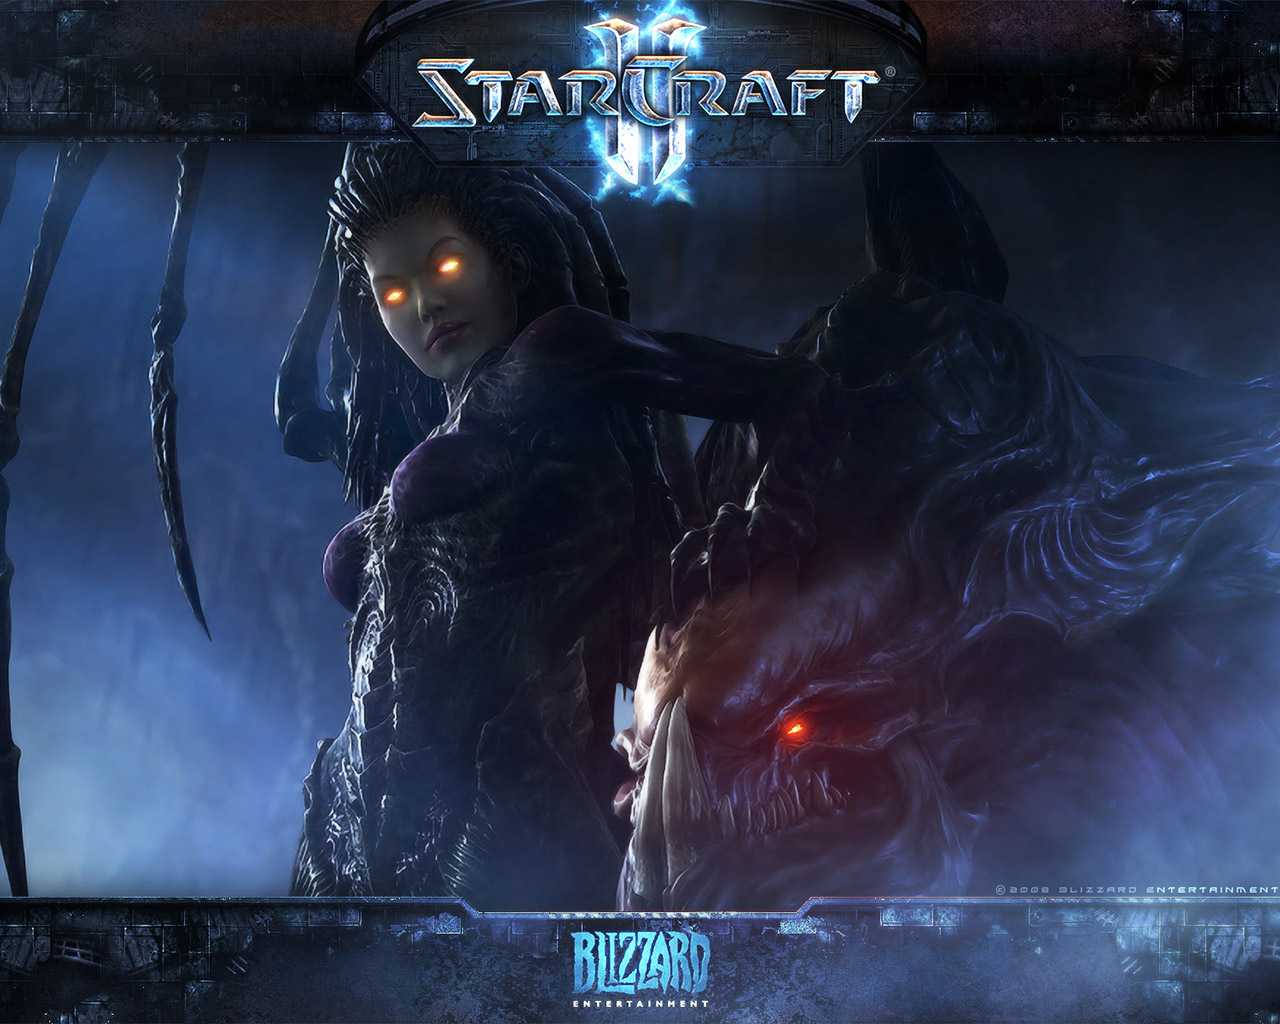 Starcraft 2: Wings Of Liberty (RU / EU) MultiLang